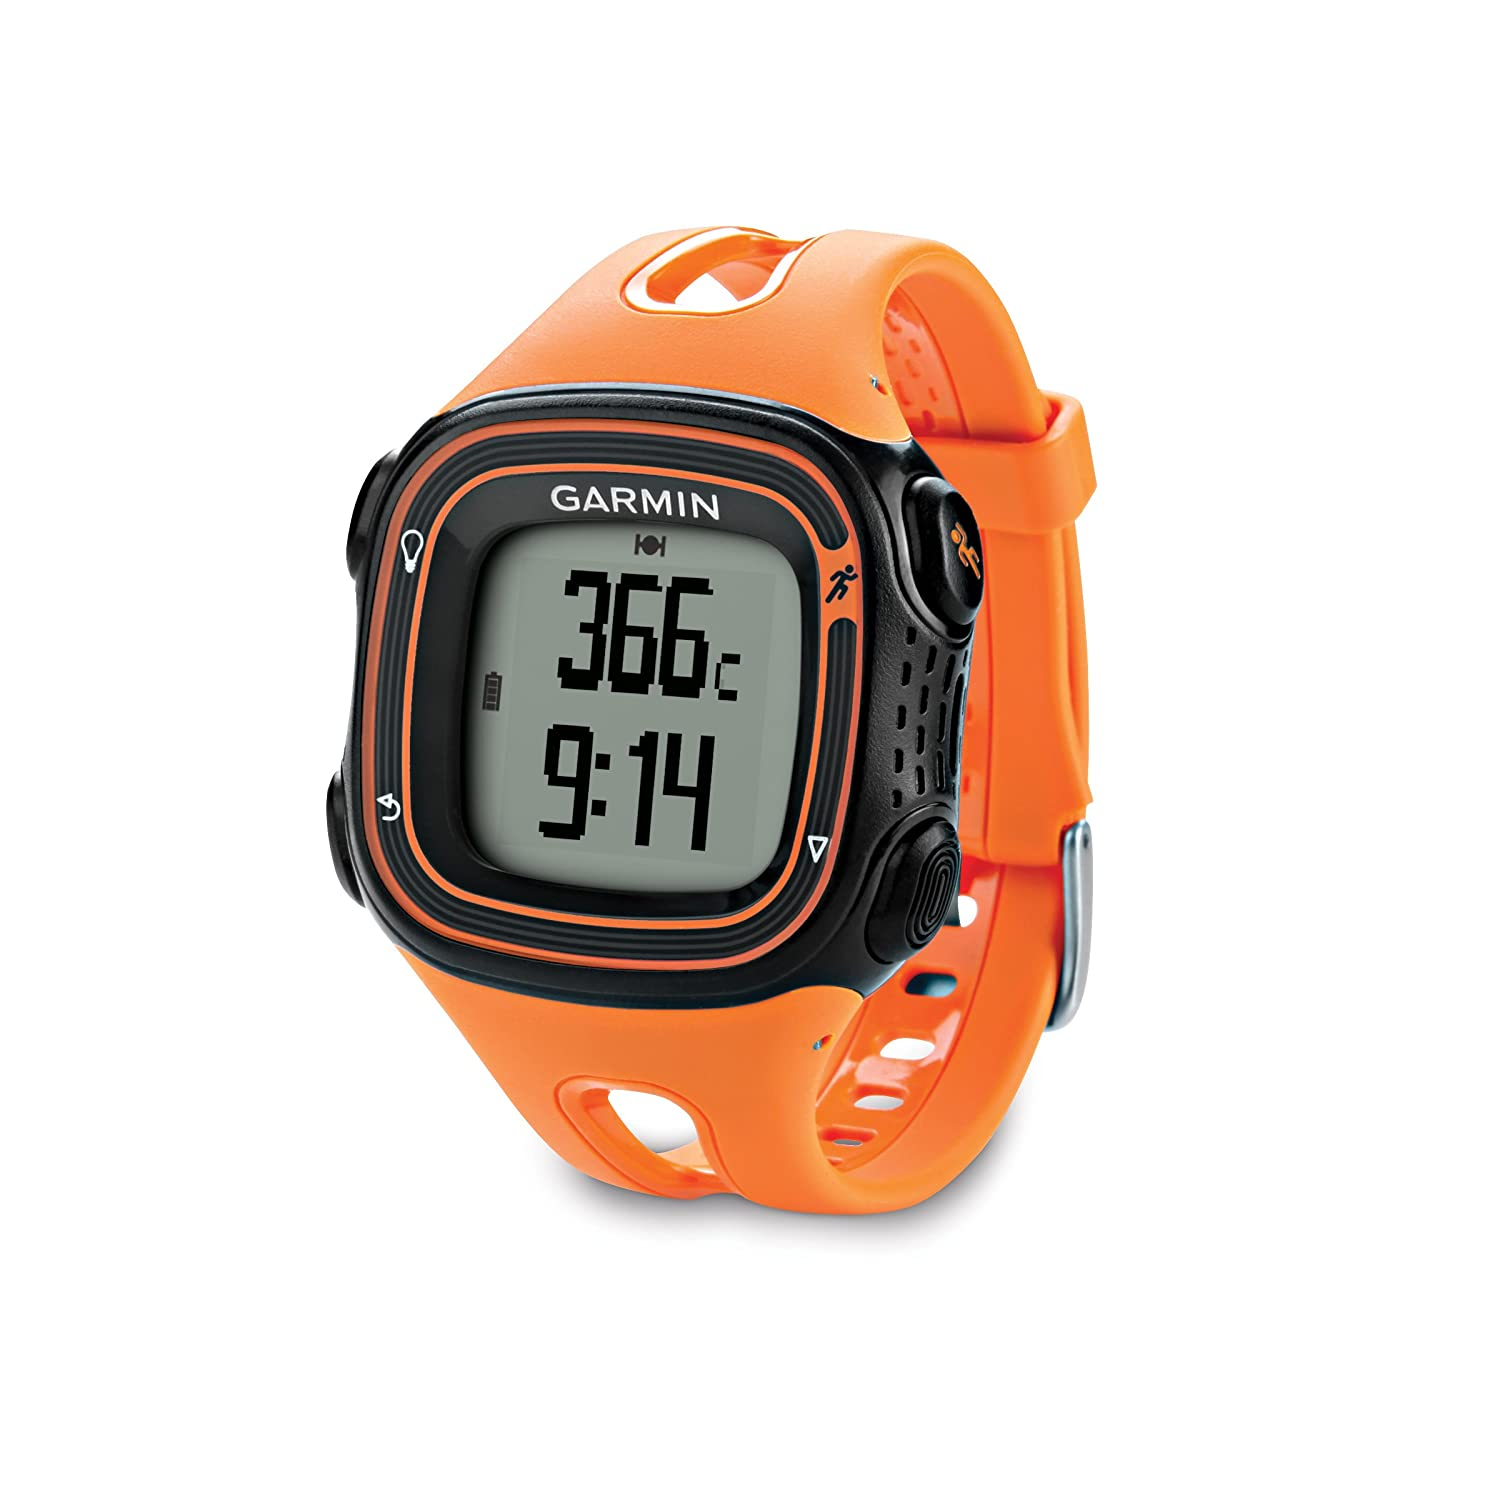 Garmin Forerunner 10 >> Garmin Forerunner 10 Gps Watch Black Orange